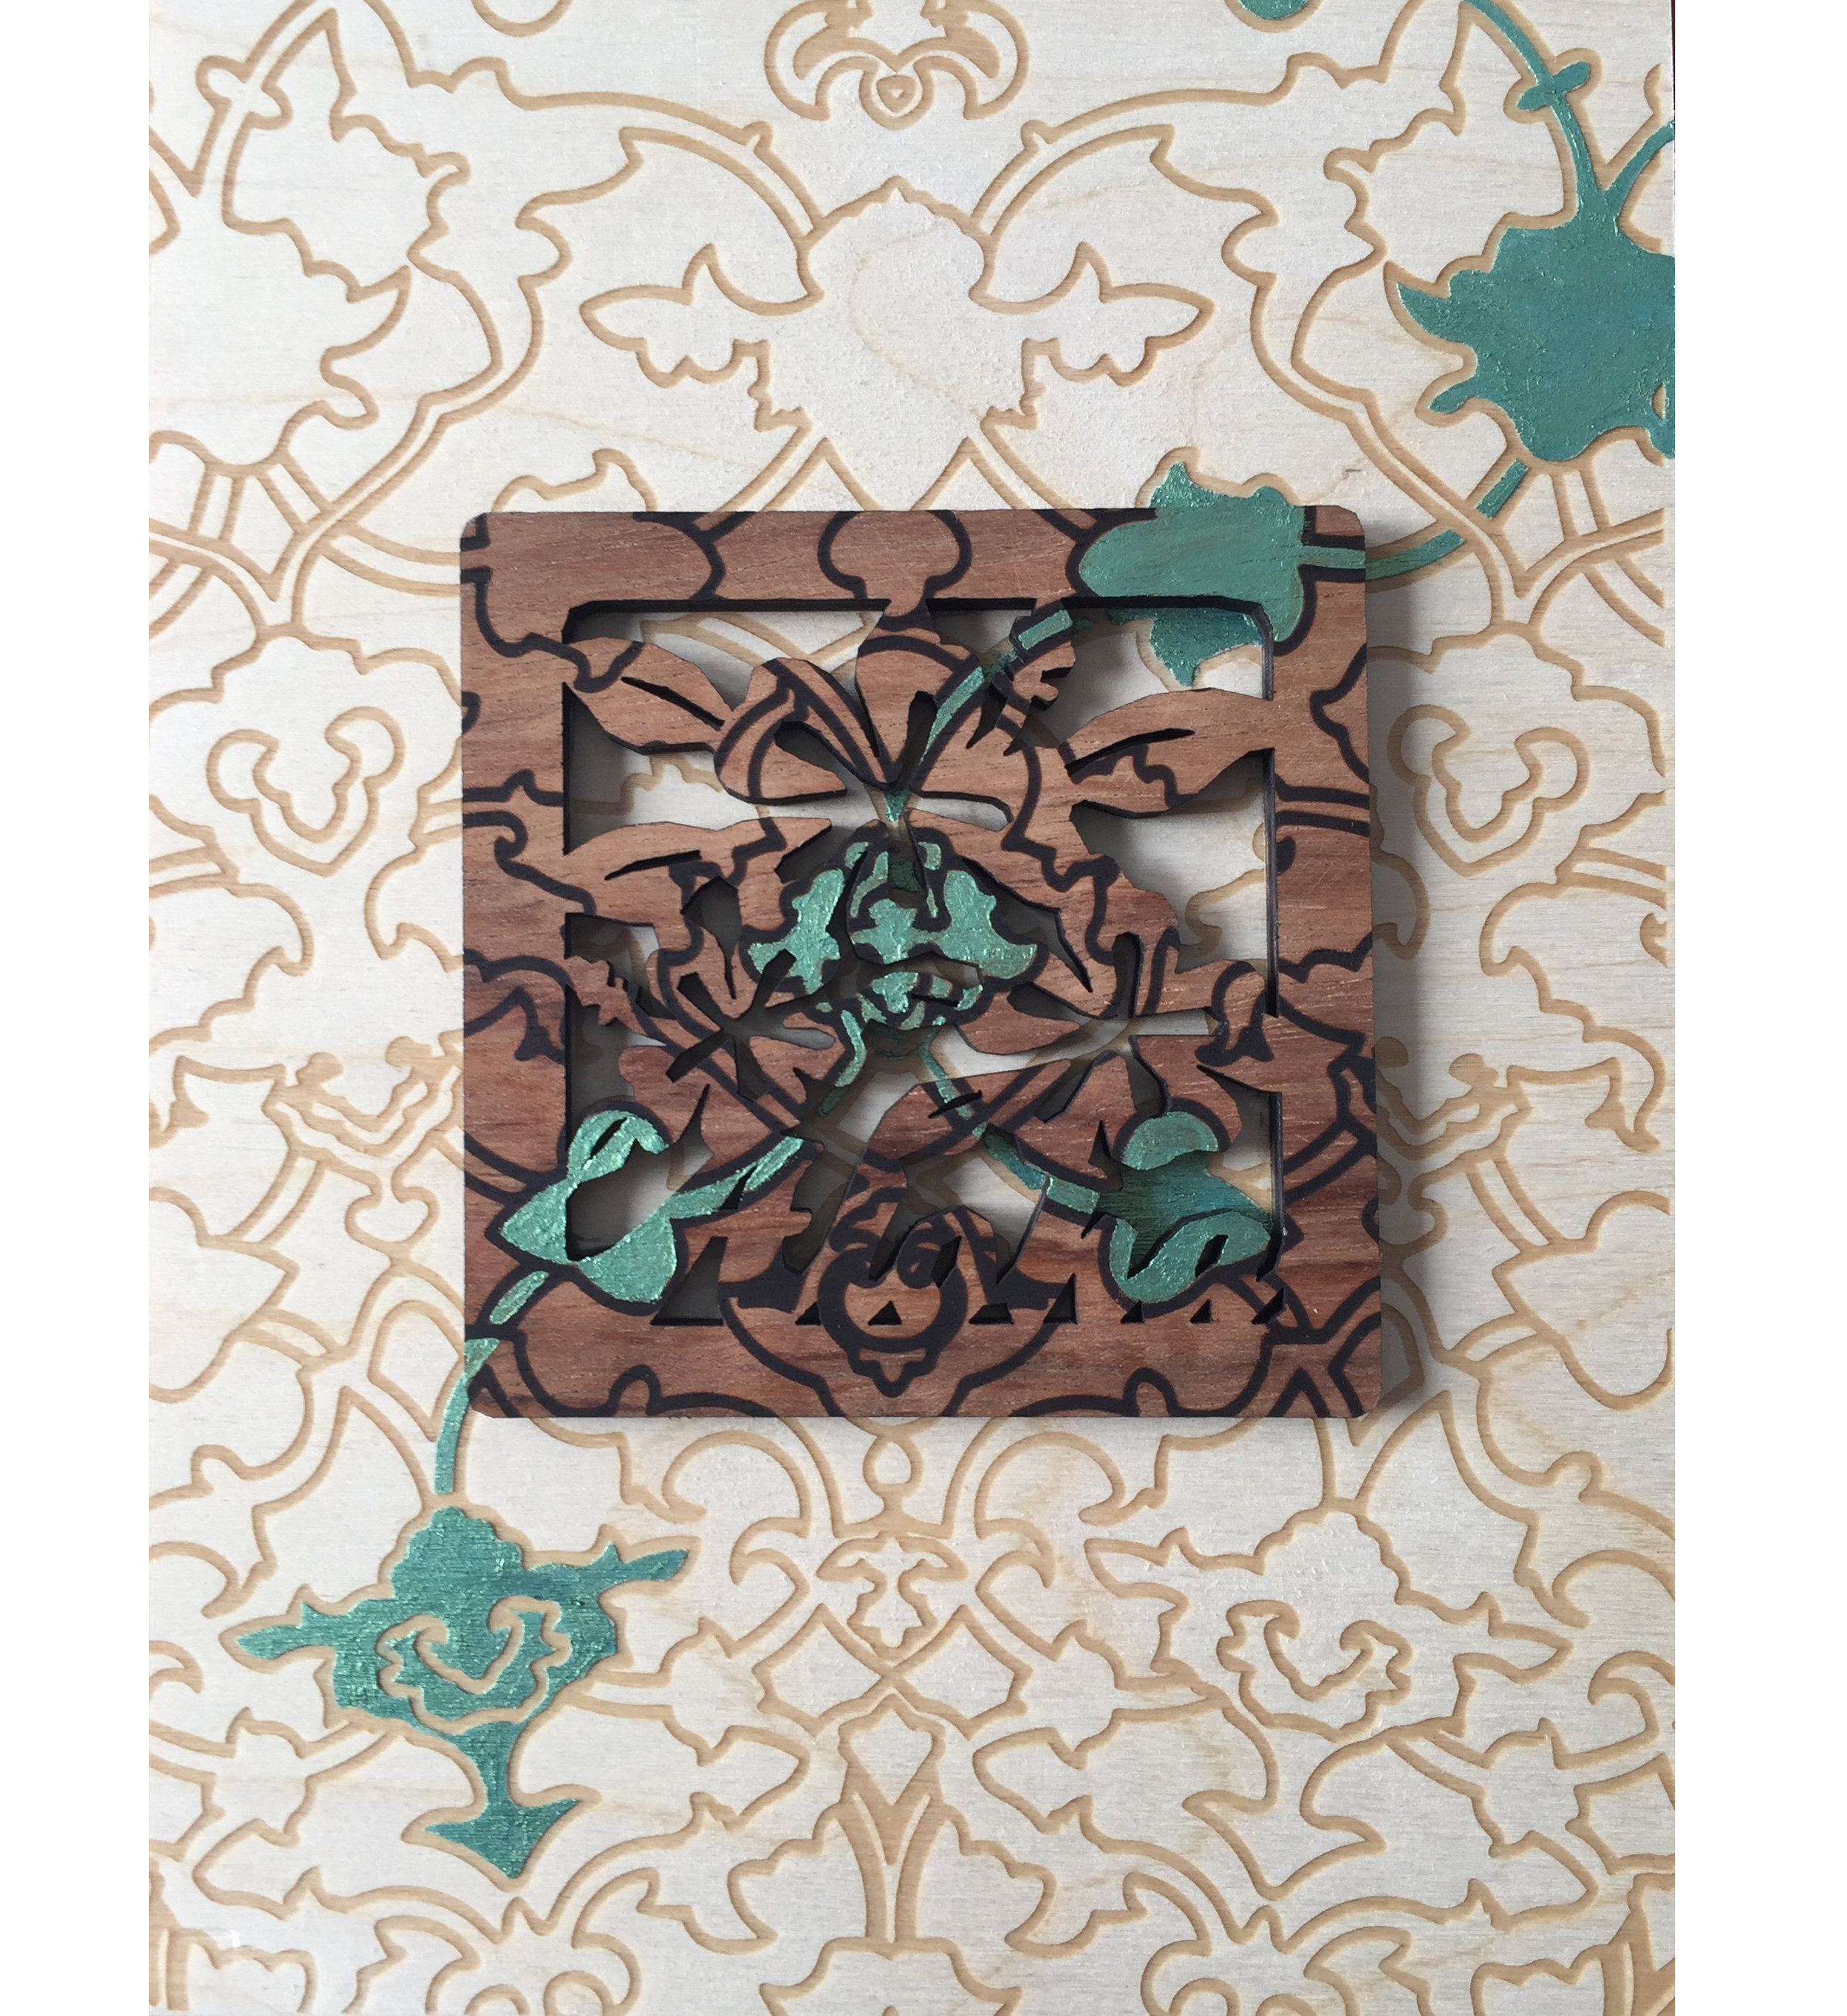 A Trace of Traceless: Honolulu, 2016 Acrylic & laser-etching on a found object on wooden panel 8″ x 6″